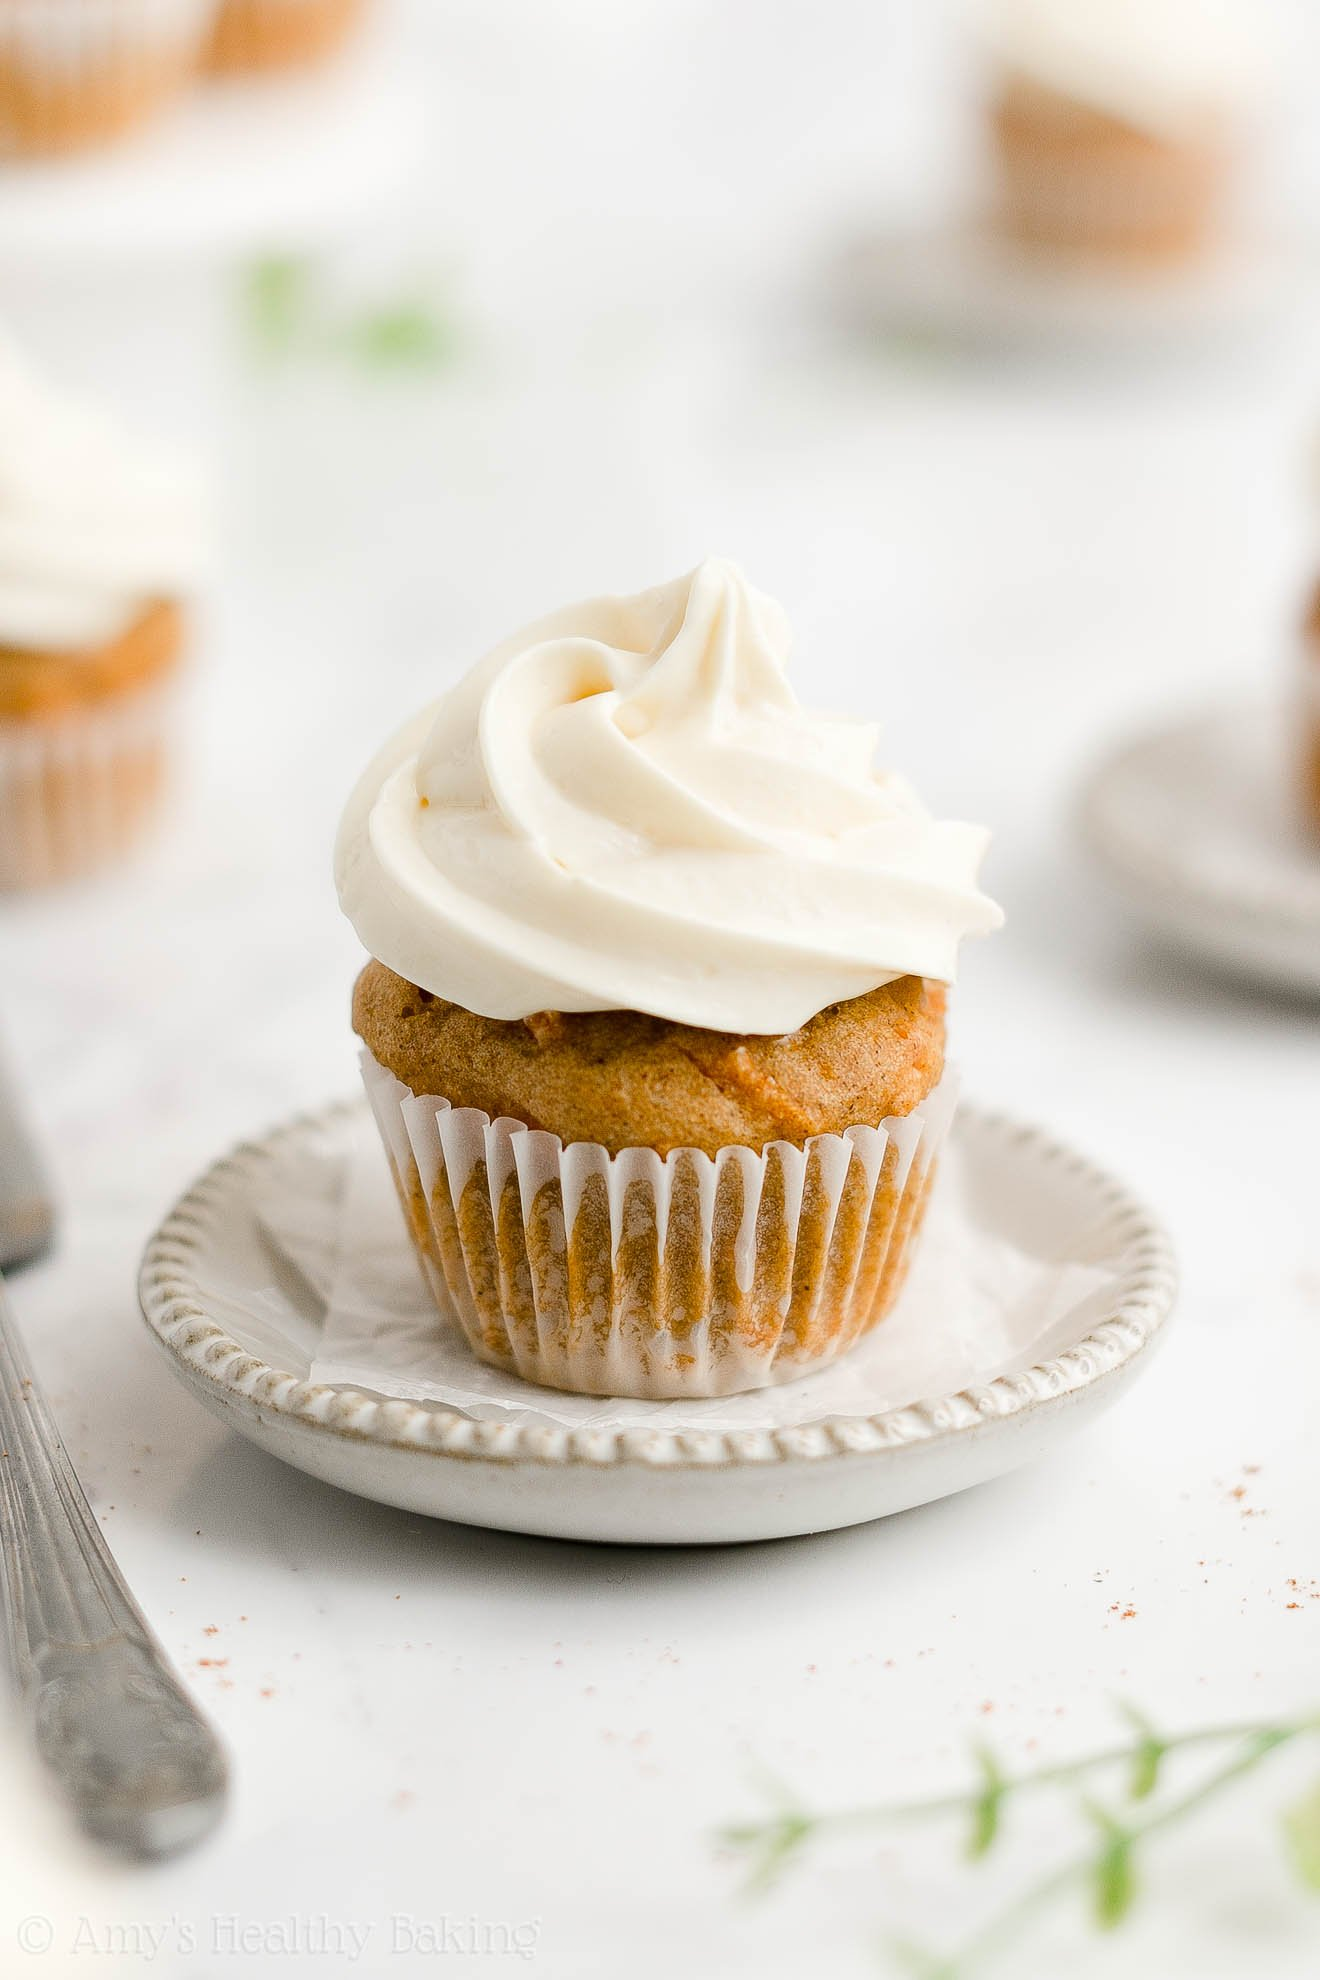 ULTIMATE Healthy Homemade Weight Watchers No Sugar Mini Carrot Cake Cupcakes